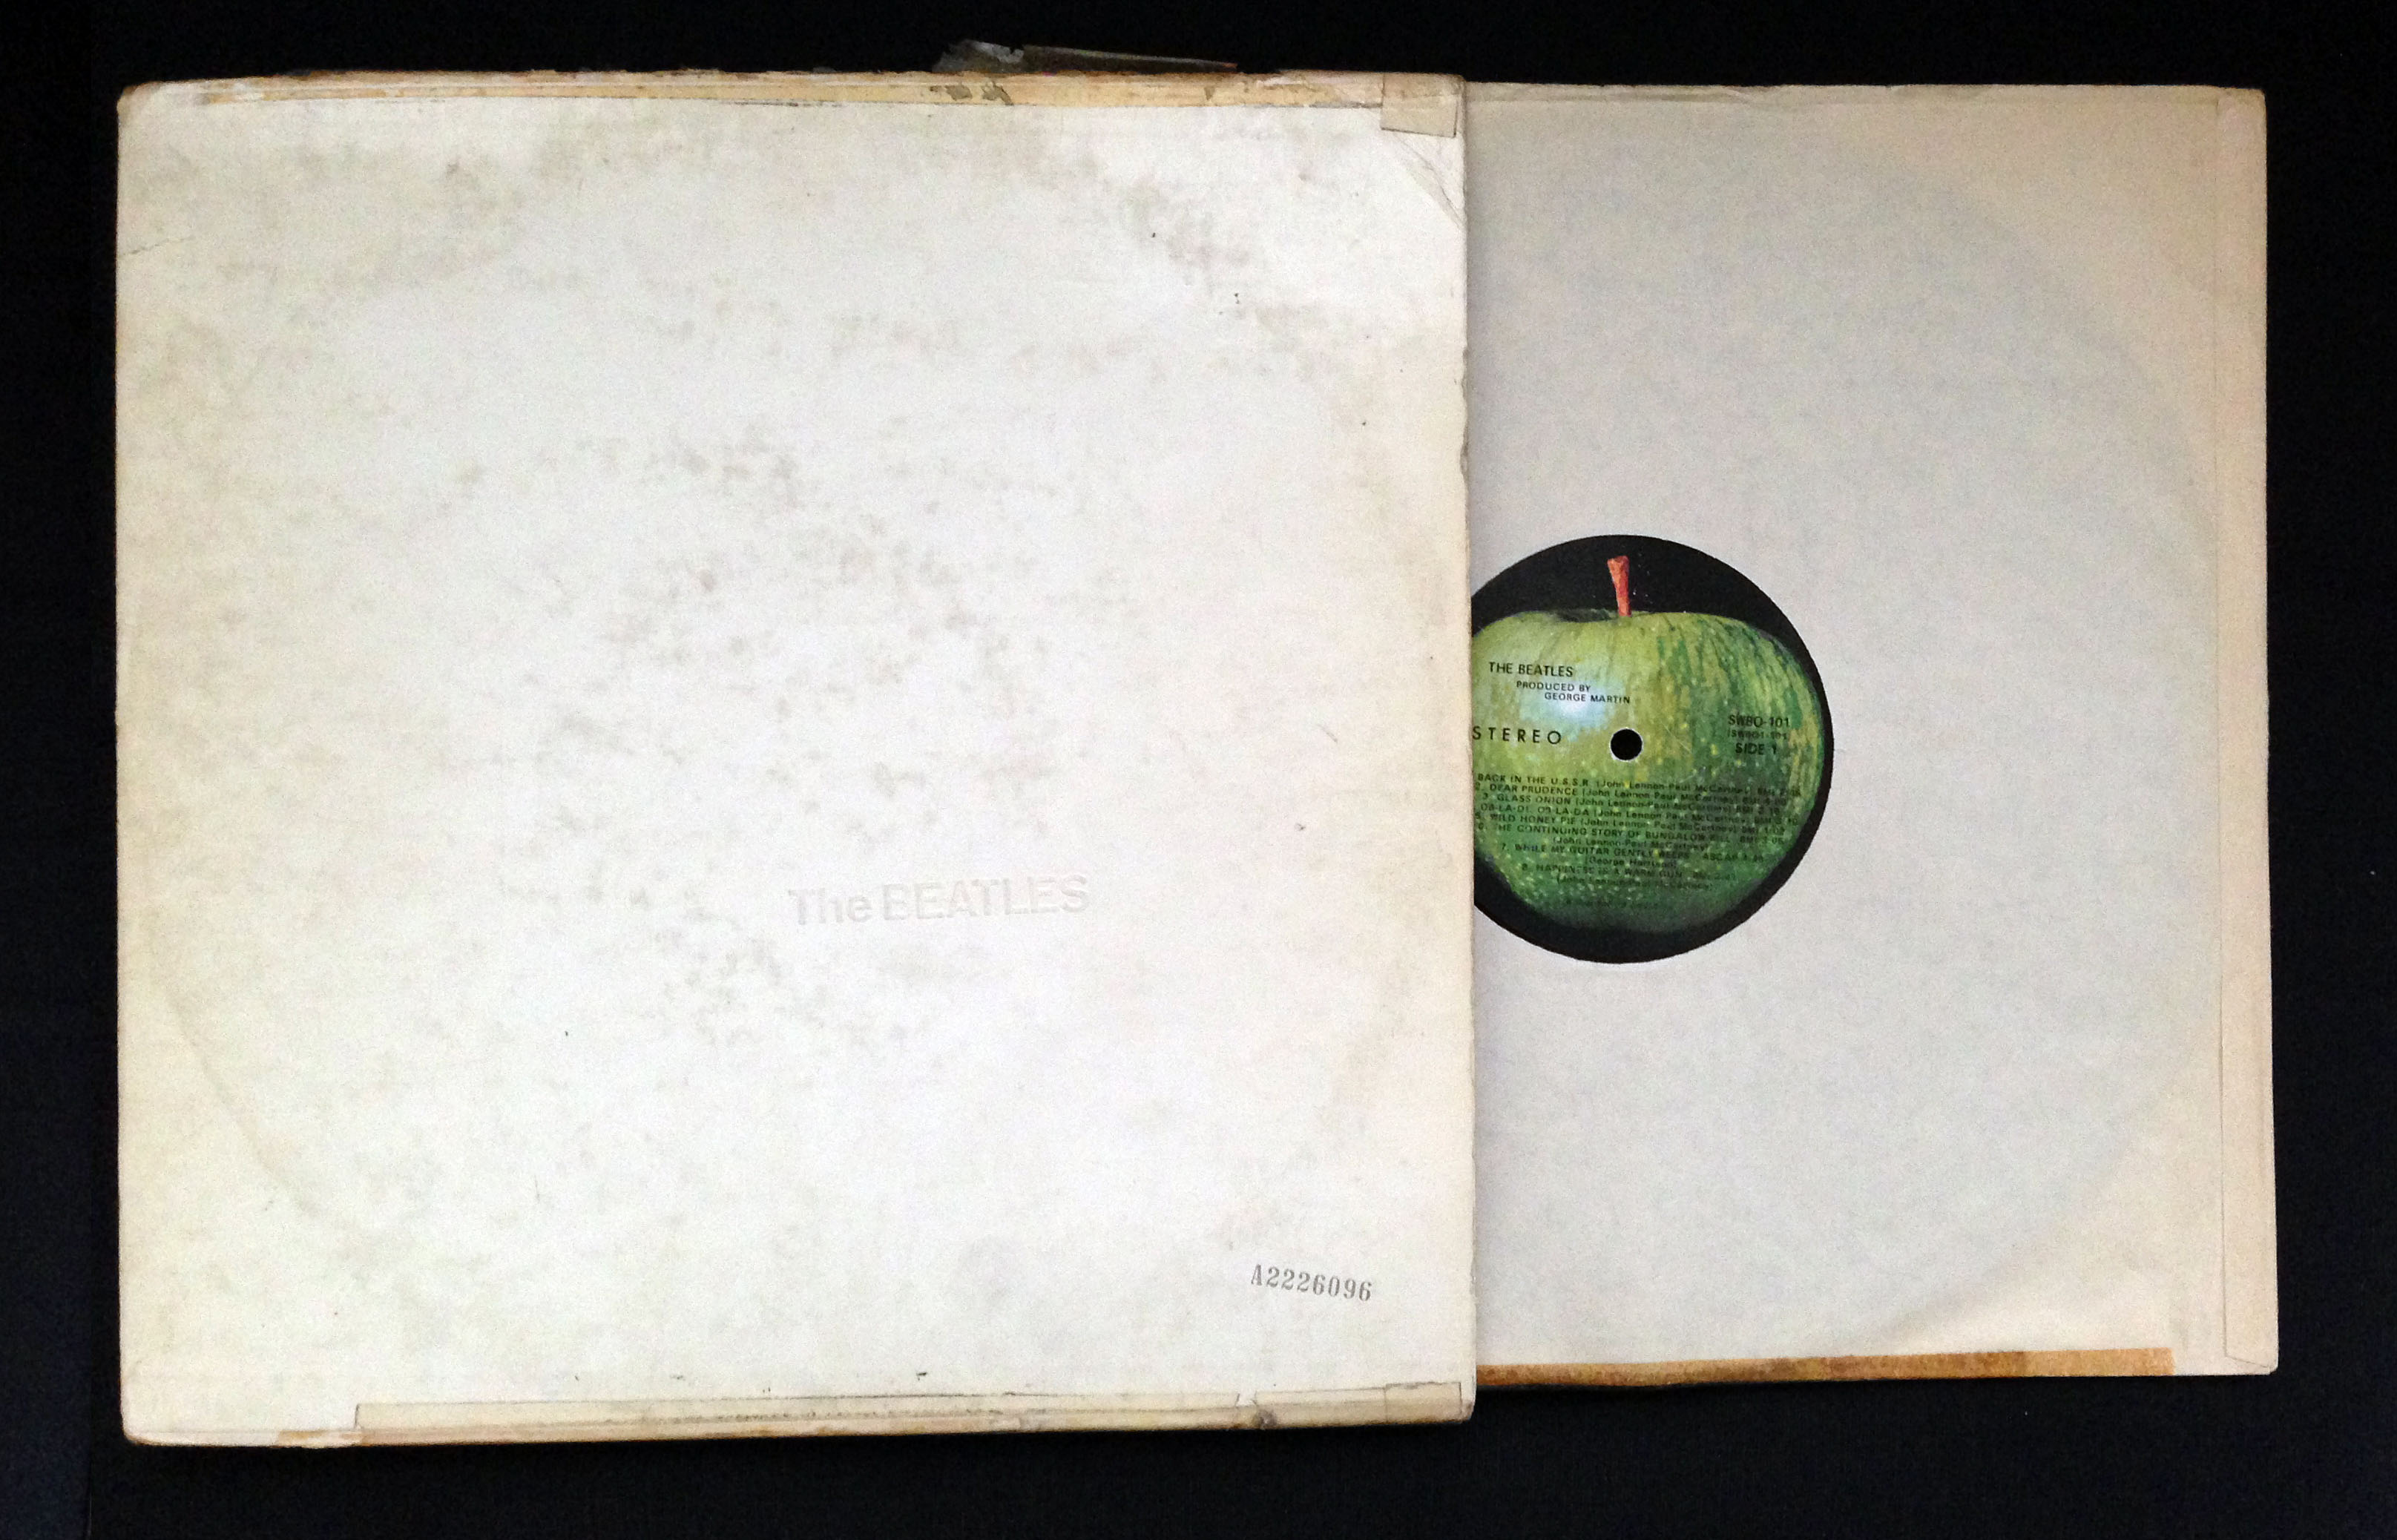 https://i2.wp.com/www.sonicyouth.com/symu/lee/files/2013/02/LRs-White-Album.jpg